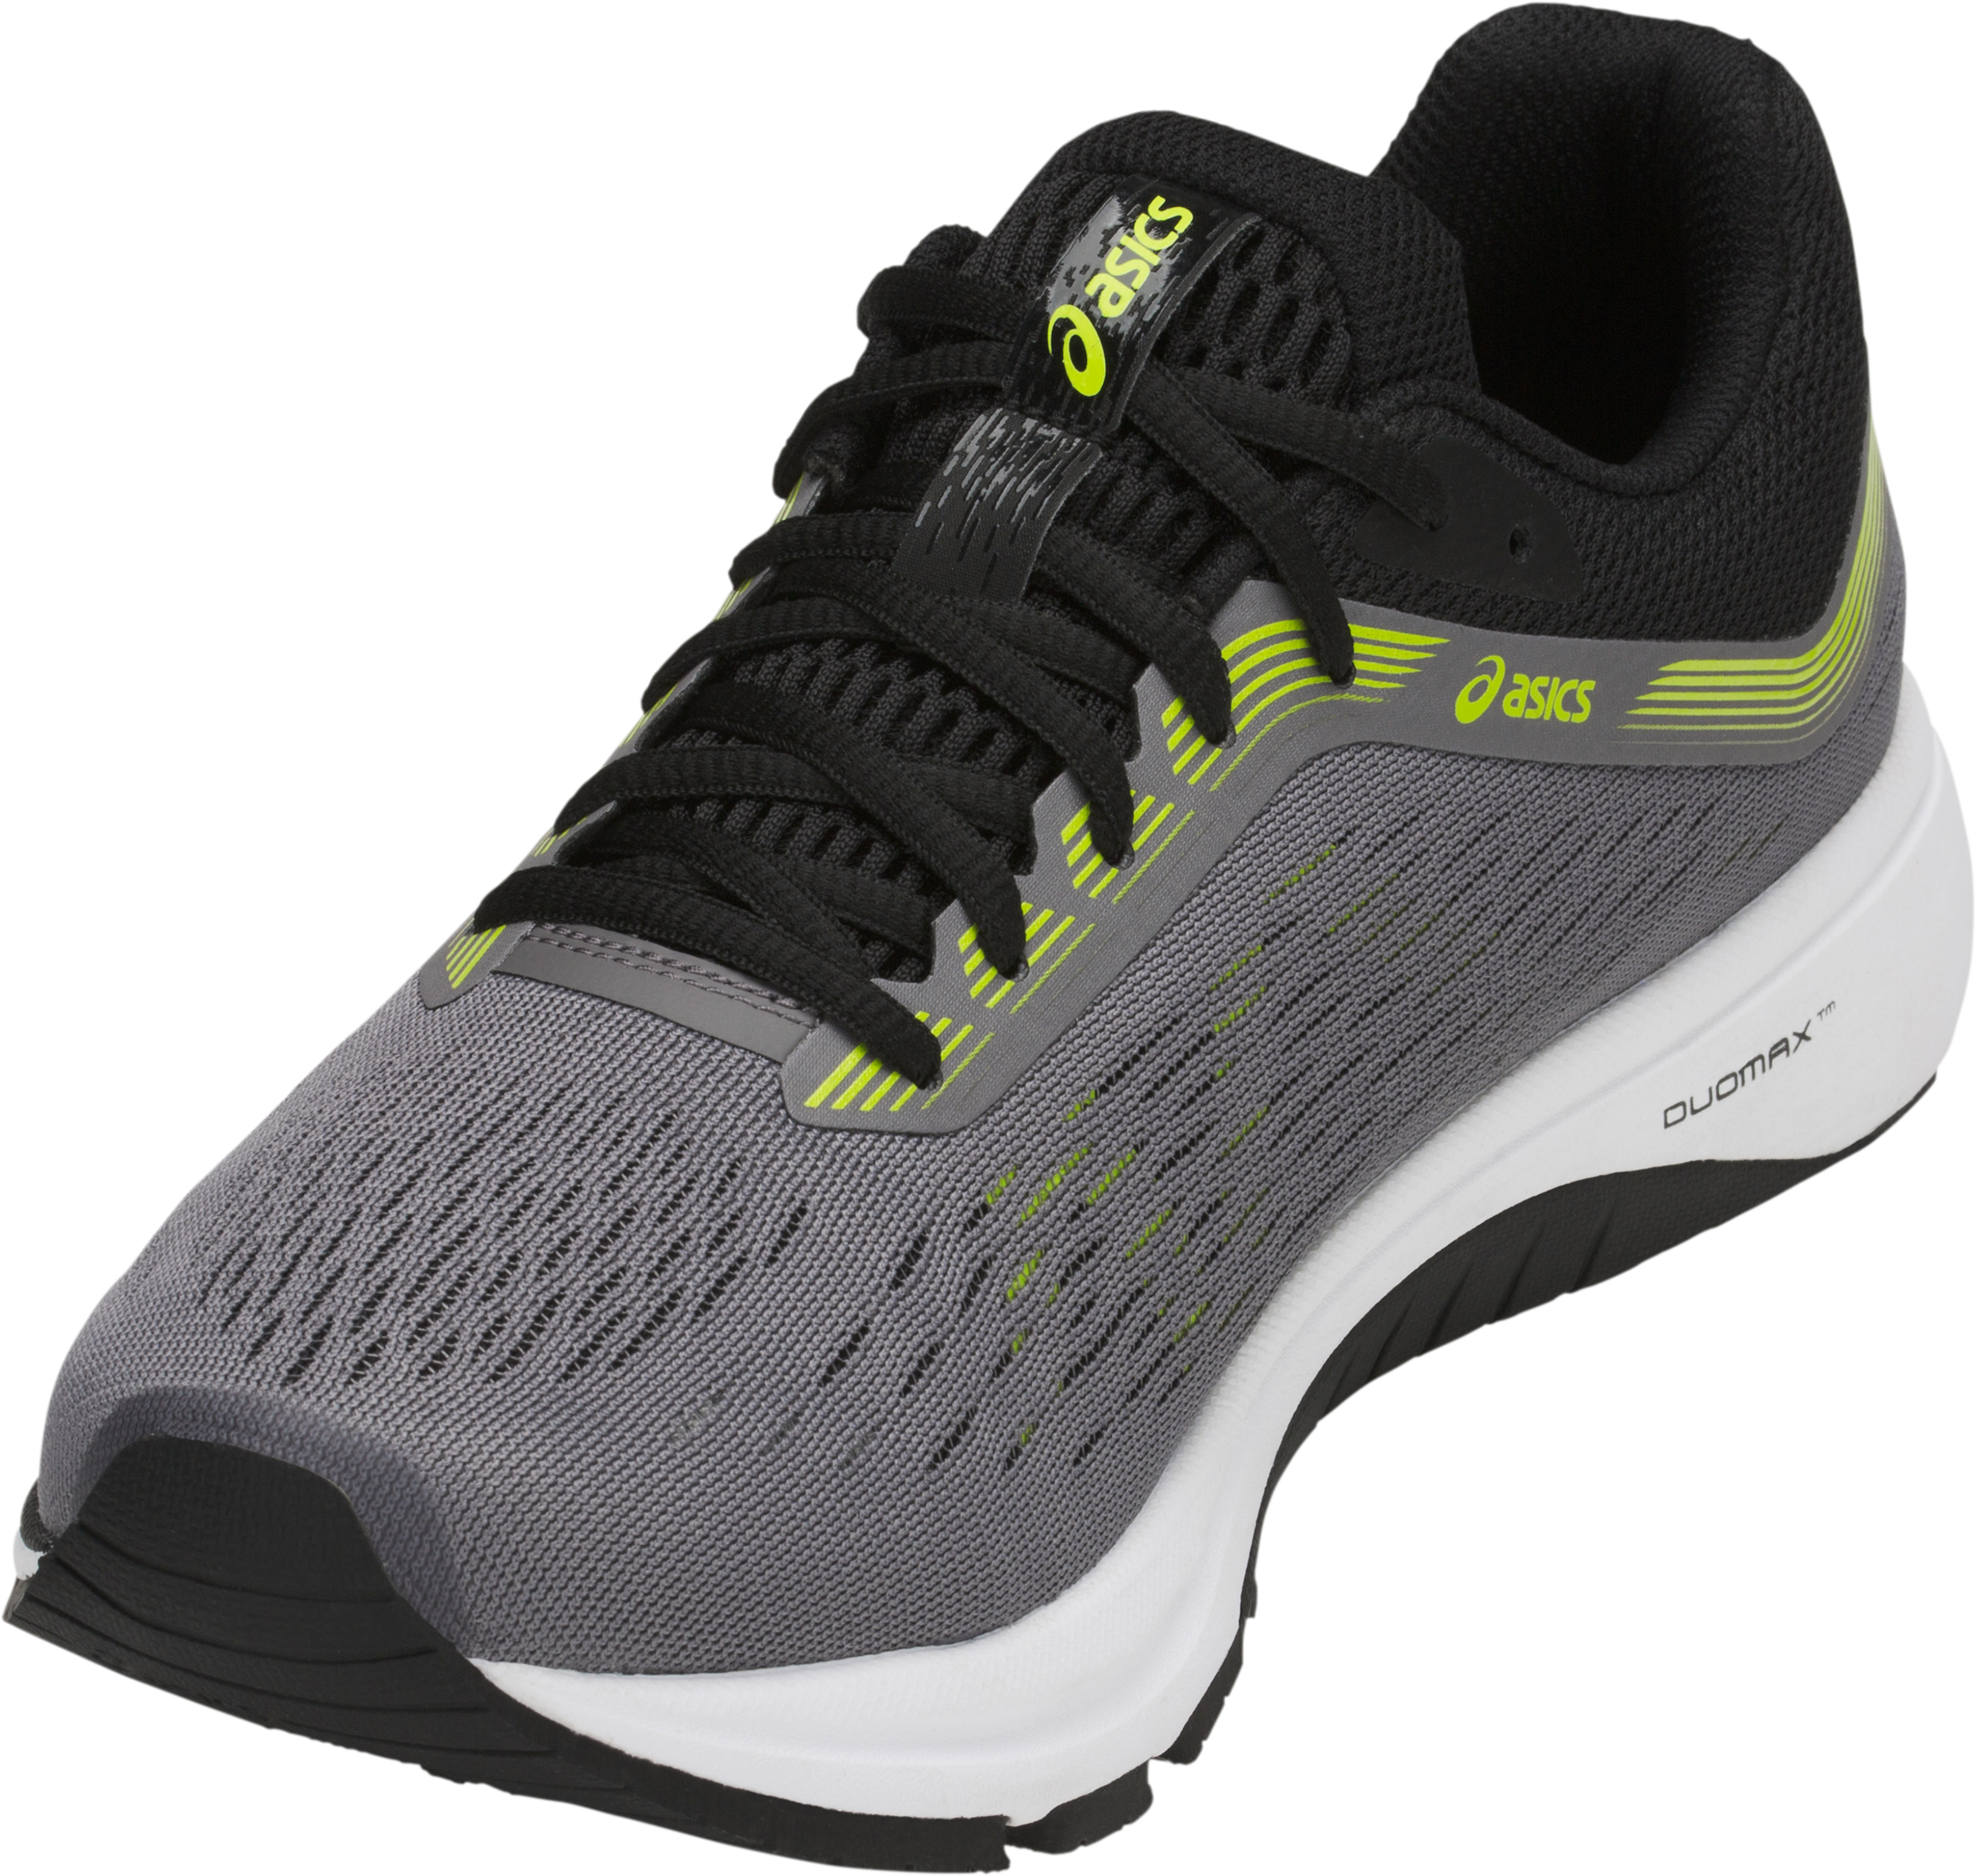 b9a59c954a9ab Asics GT-1000 7 Road Running Shoes - Men s